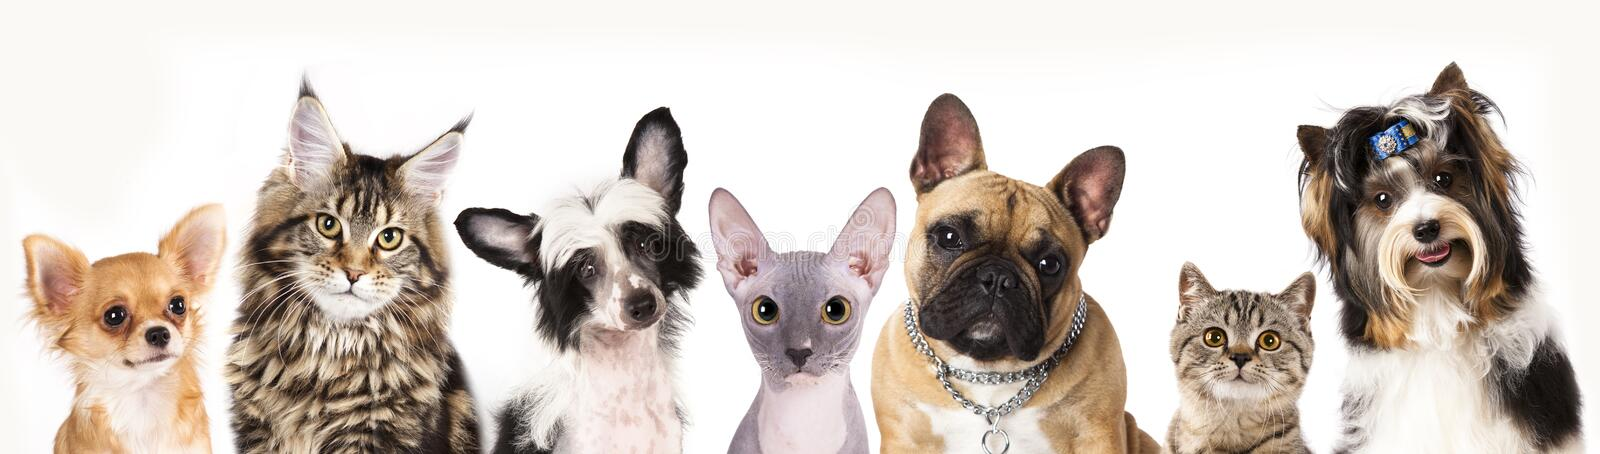 group of dogs, animals royalty free stock photos